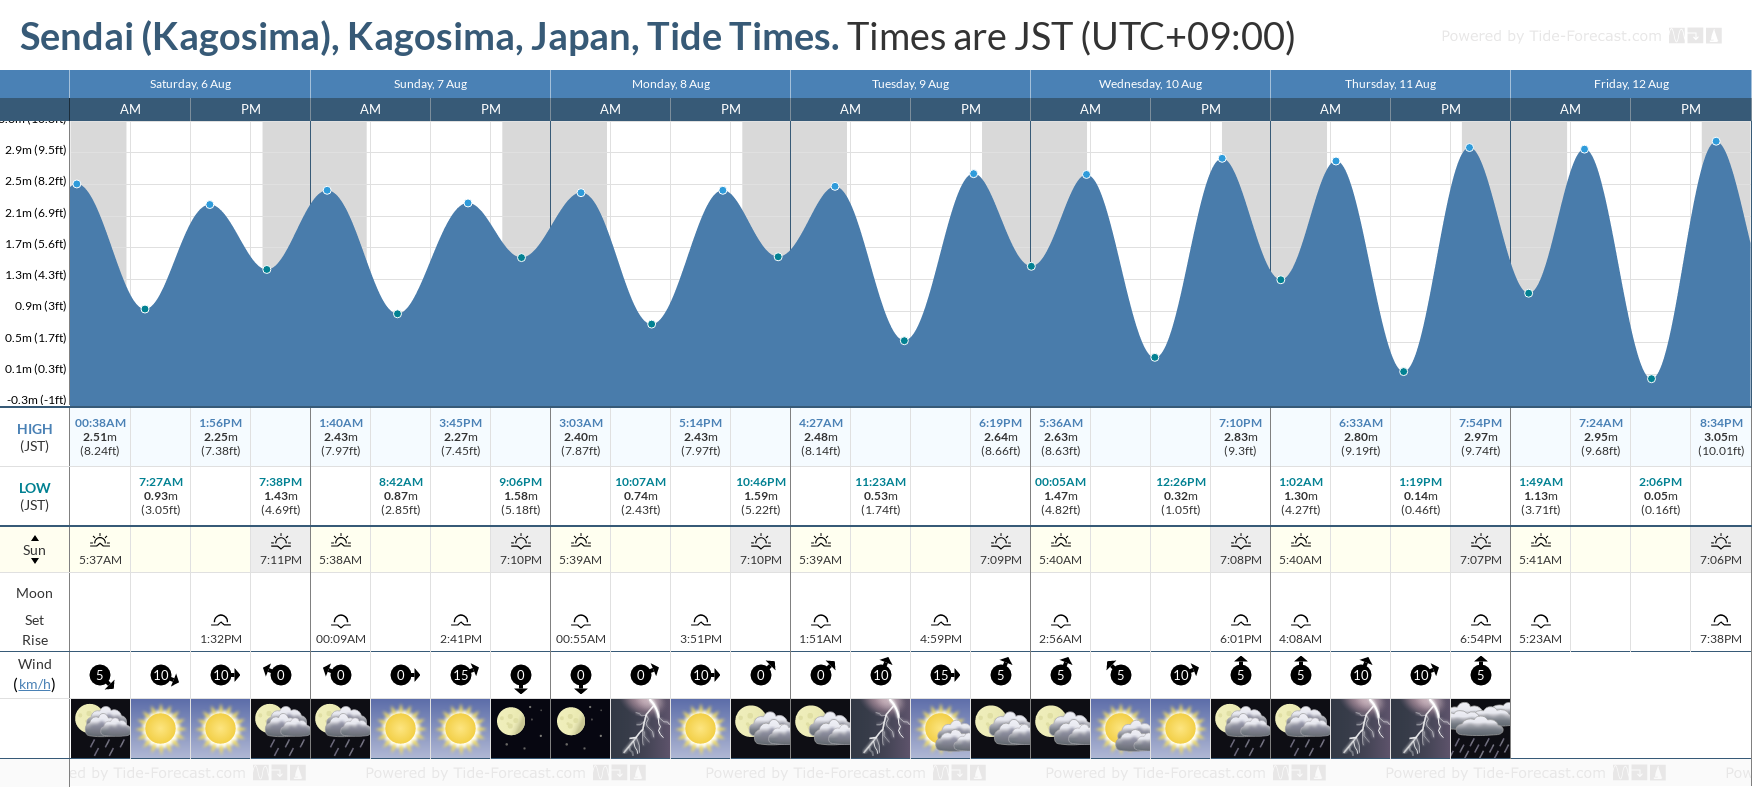 Sendai (Kagosima), Kagosima, Japan Tide Chart including high and low tide tide times for the next 7 days